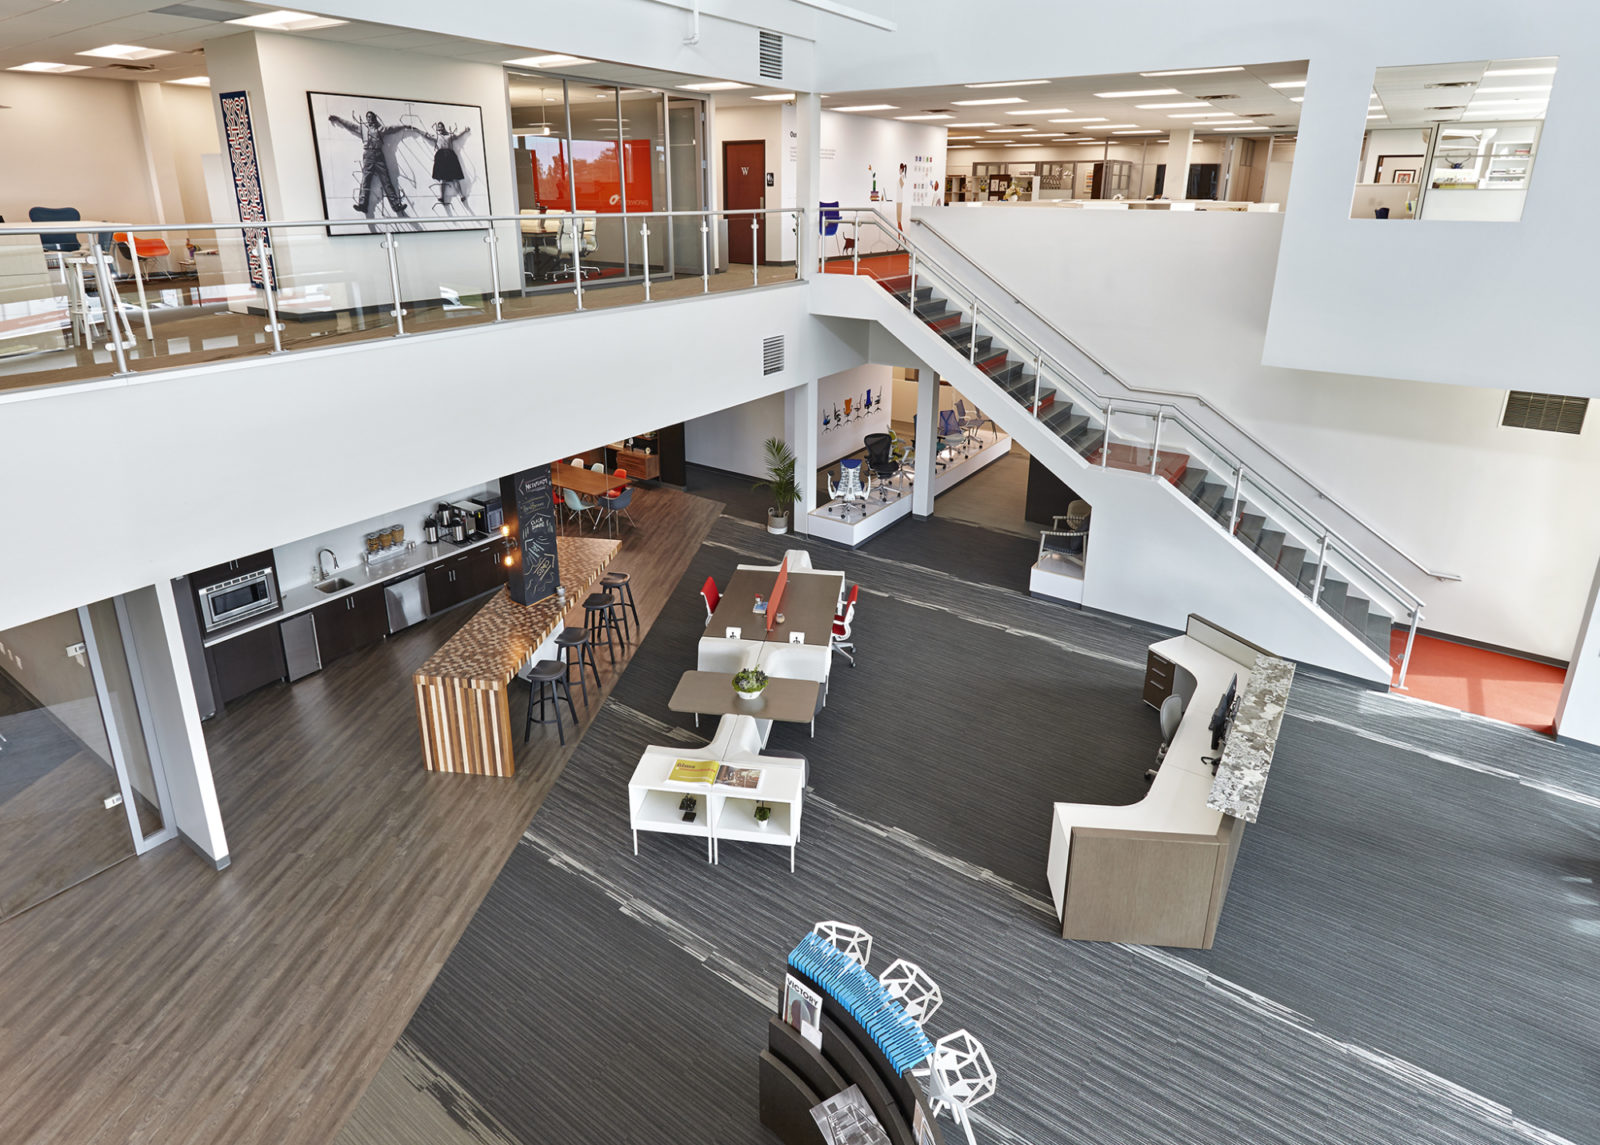 OW Showroom/Office: Aerial view of plaza